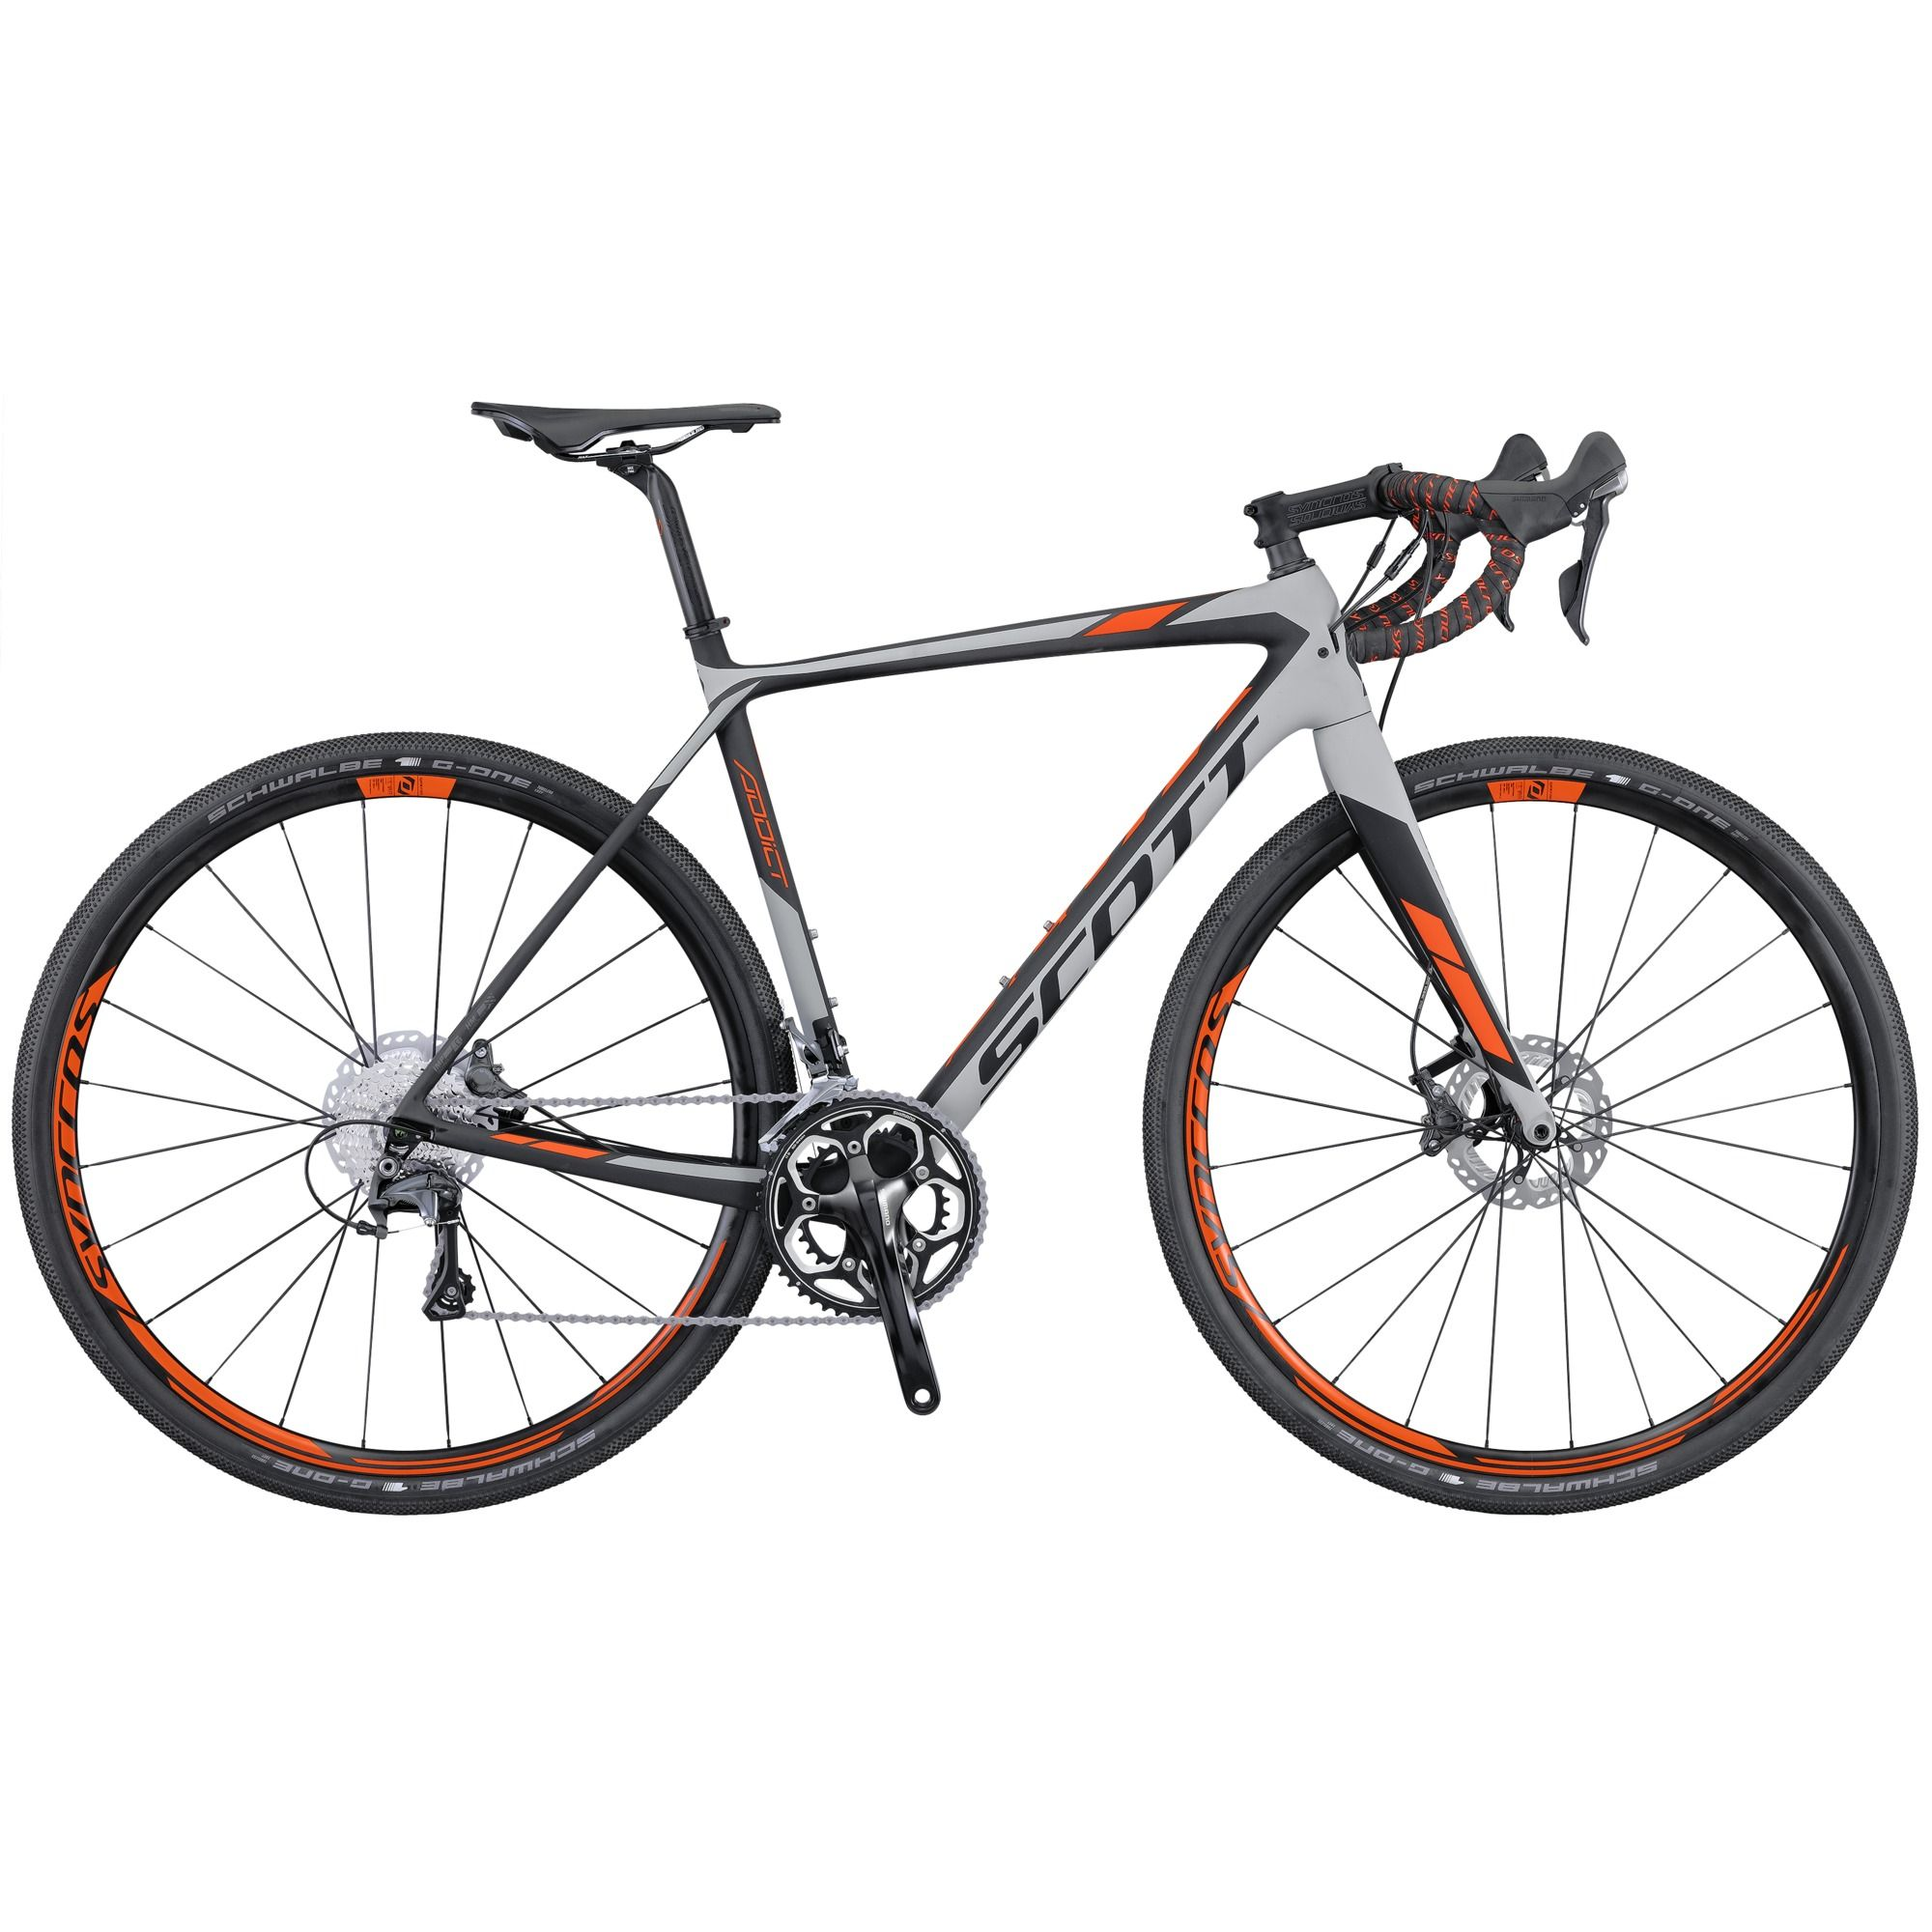 The All New Addict Gravel Disc Has Been Set Up To Allow You To Ride Any Road Anywhere And In Any Weather Conditions A Light Scott Bikes Bike Bicycle Painting